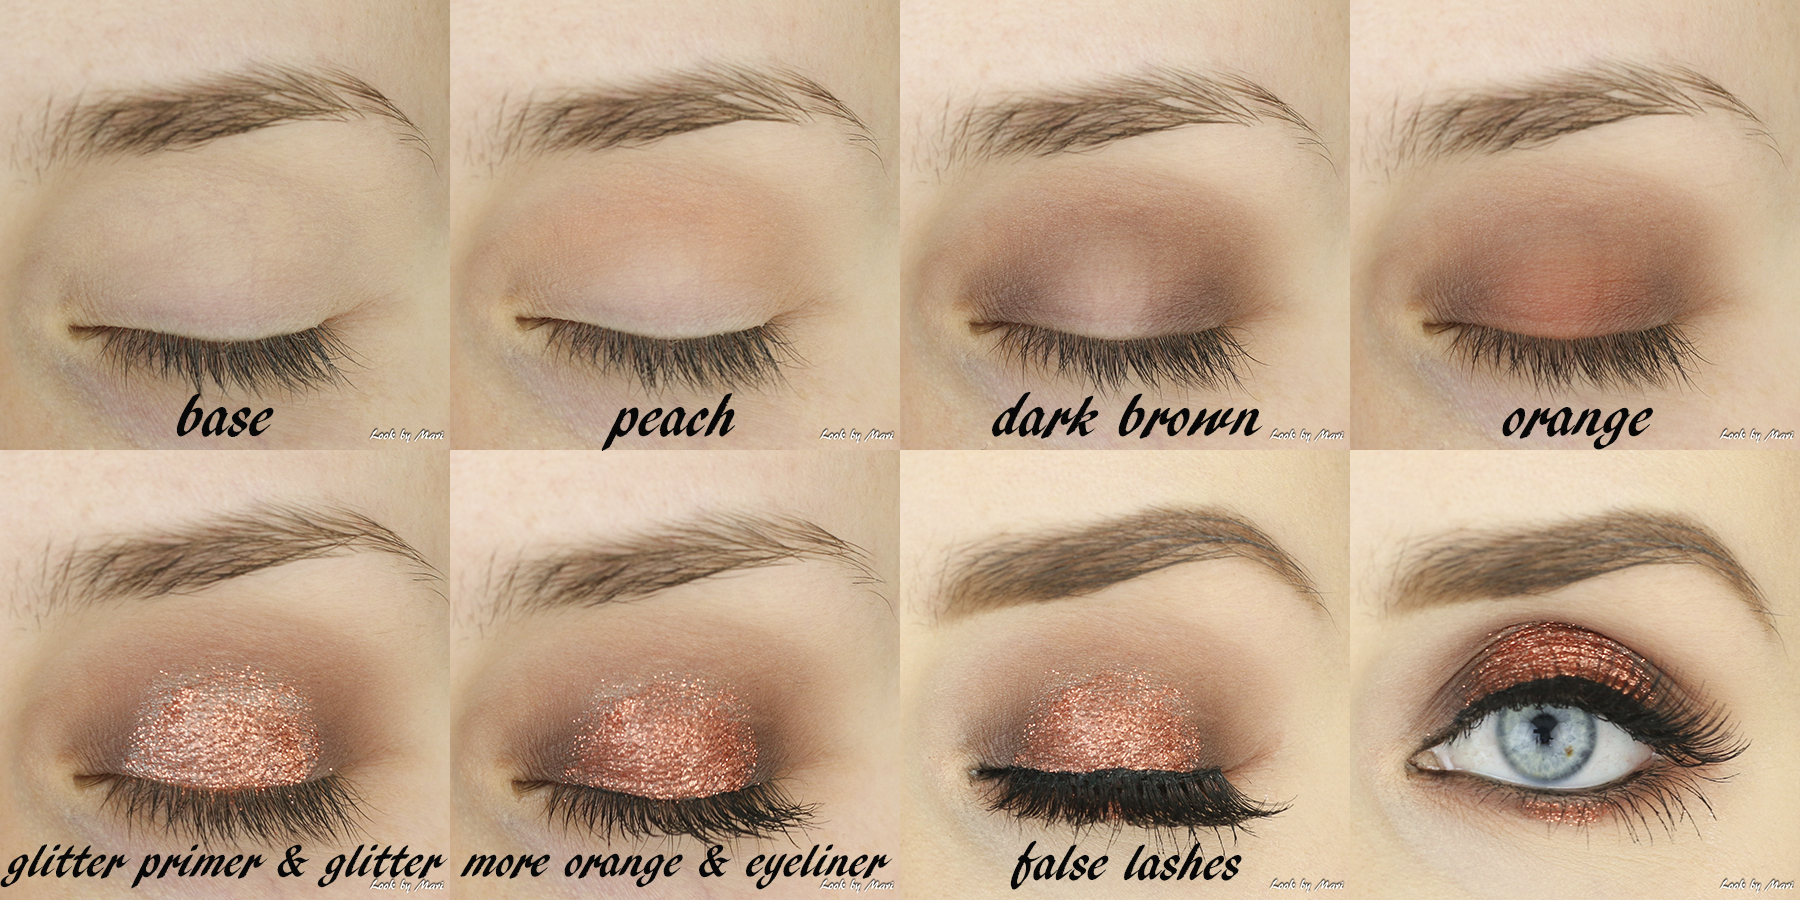 4 orange copper glitter makeup inspo inspiration tutorial step by step blog